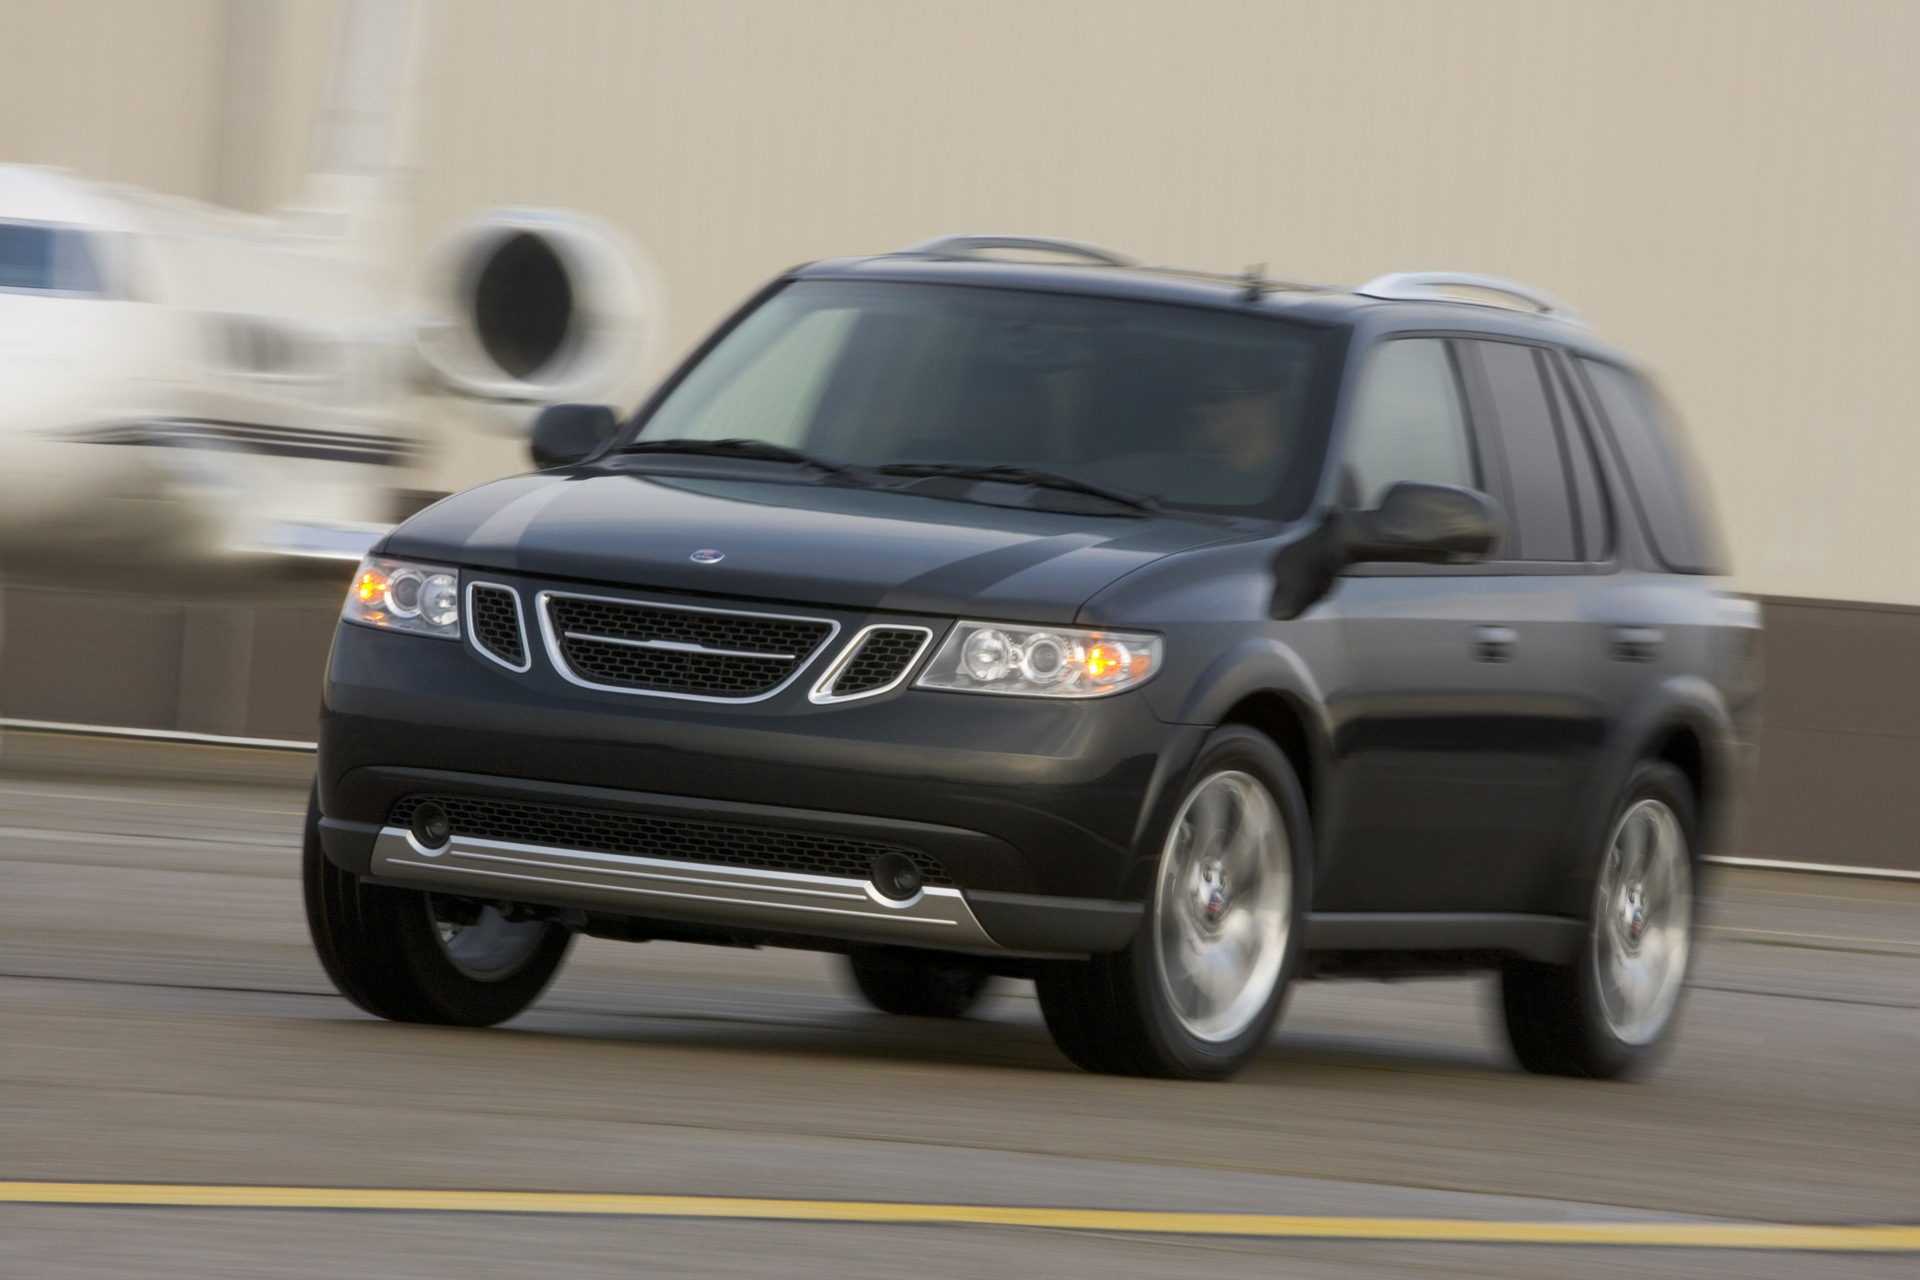 2008 Saab 9-7X News and Information | conceptcarz.com